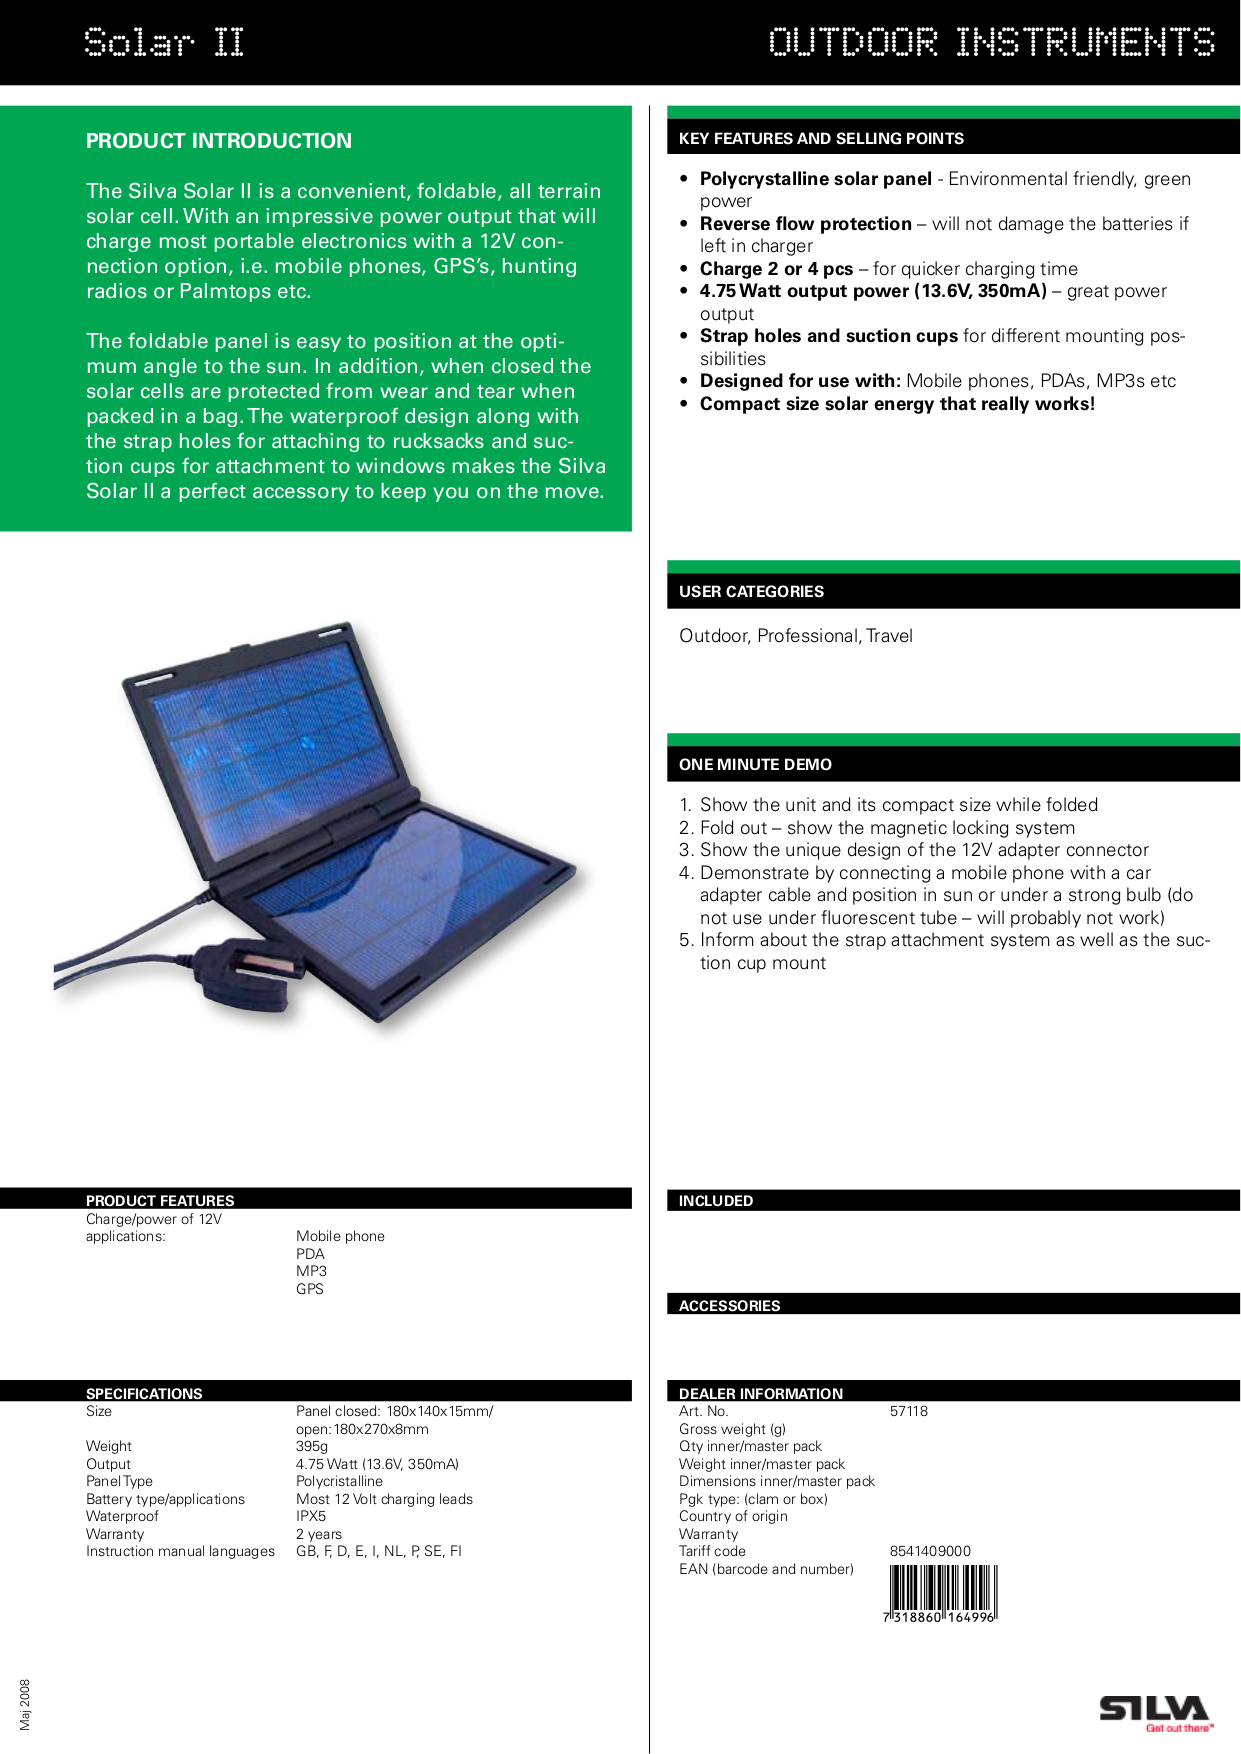 pdf for Silva Other Solar II Chargers manual